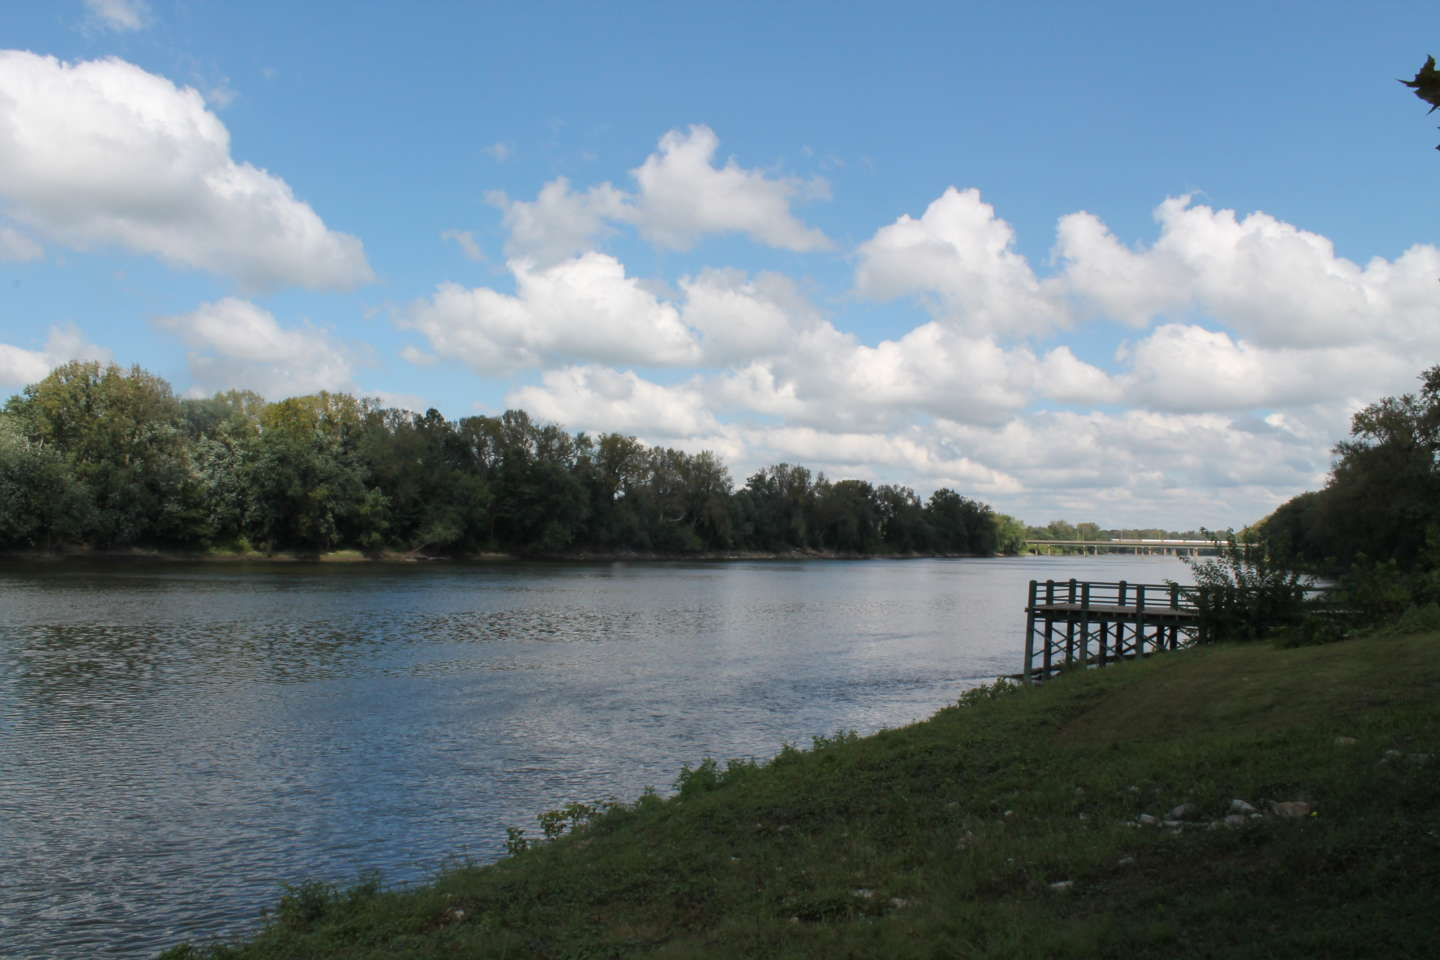 Photo of the Wabash River from Fairbanks Park